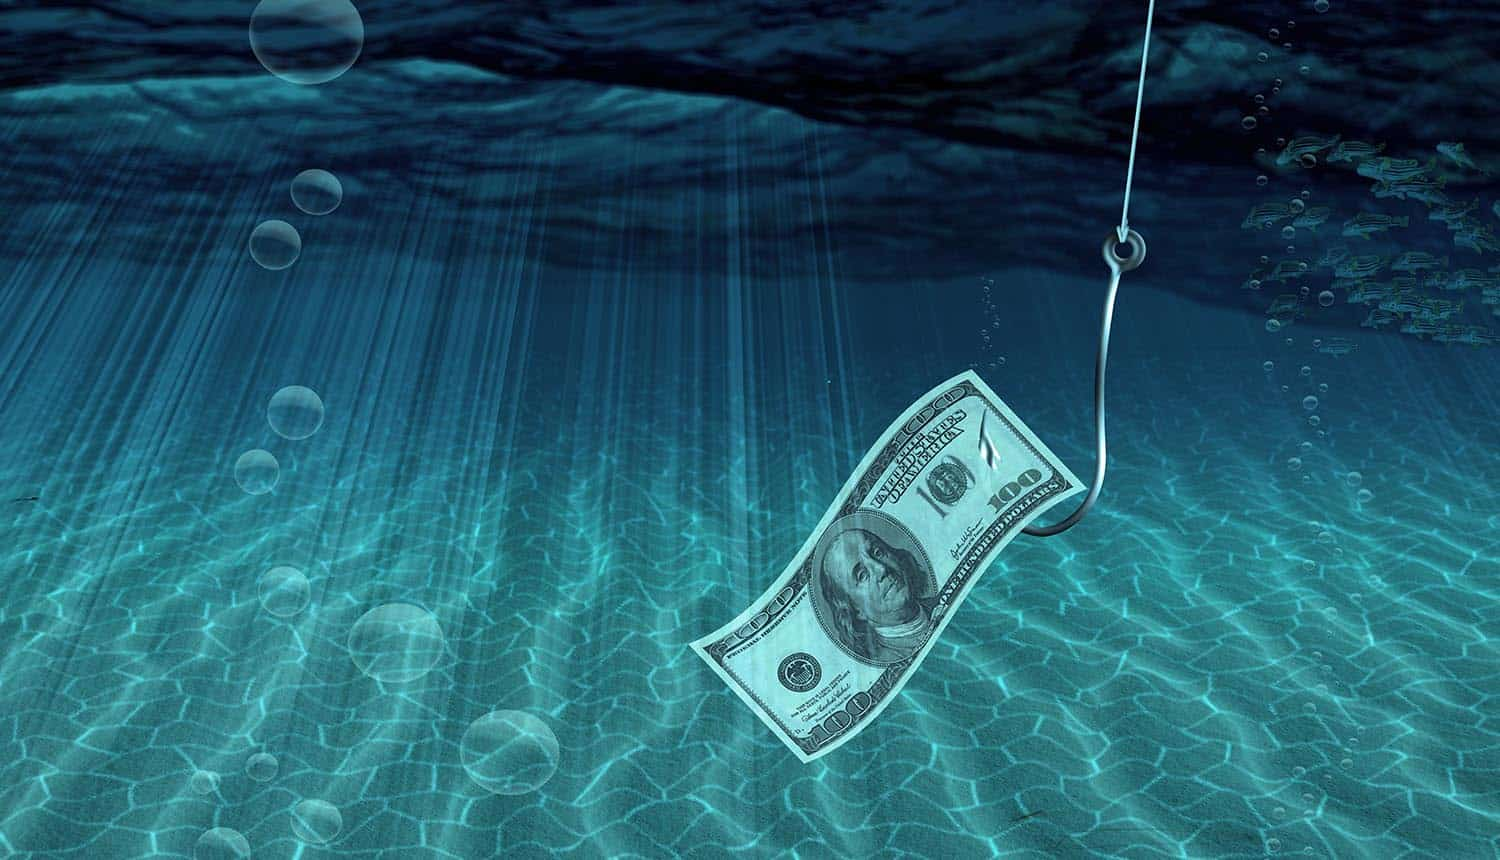 One hundred dollar bill on fish hook showing phishing attacks and malicious emails